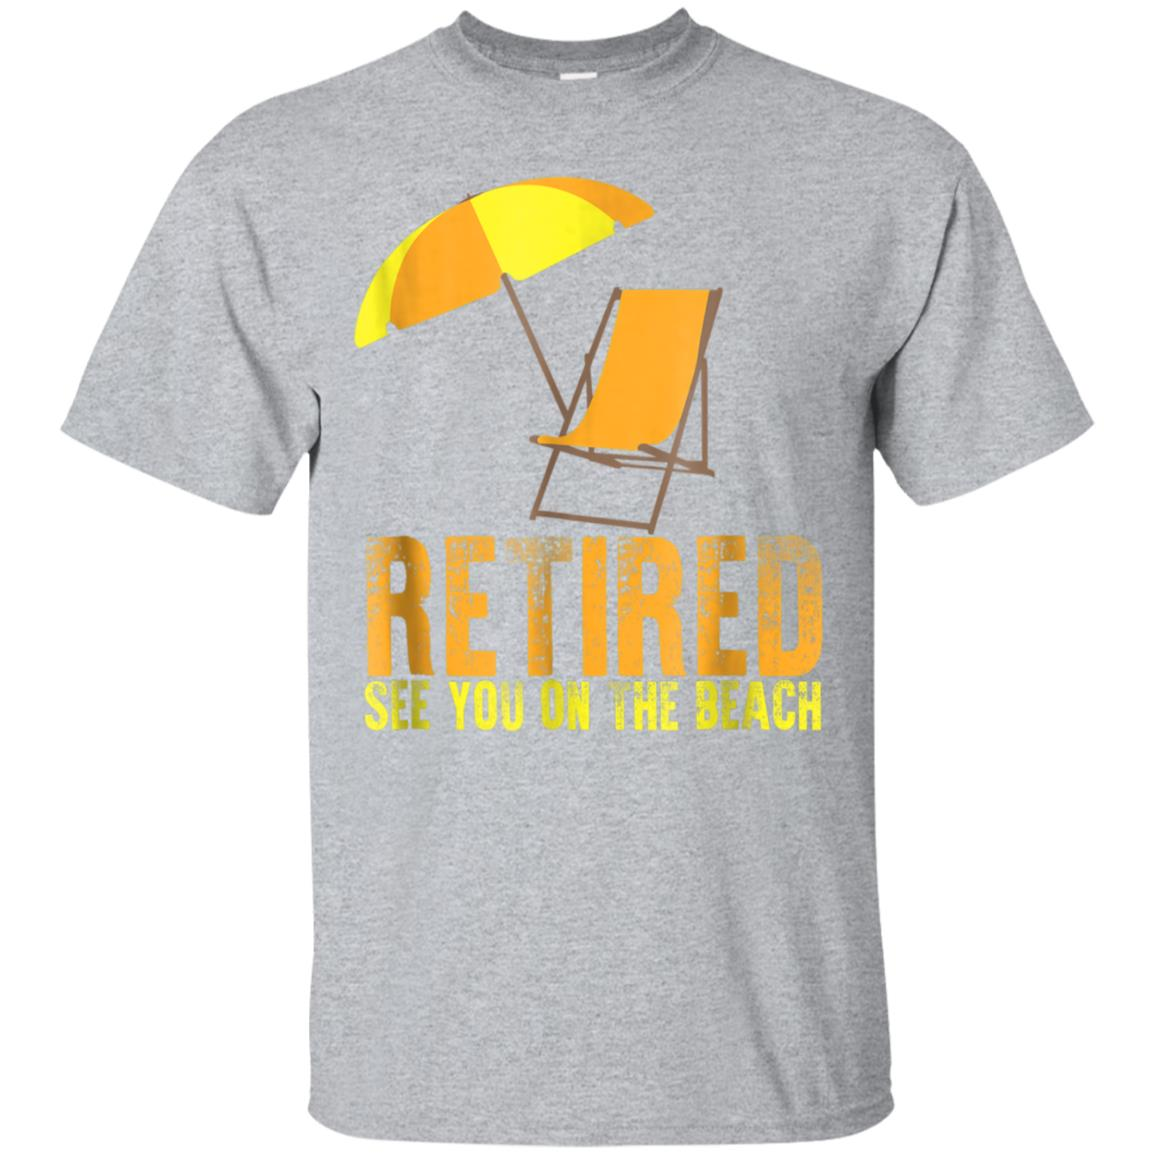 5e5033a95 Awesome retired see you on the beach funny retirement gift t shirt ...